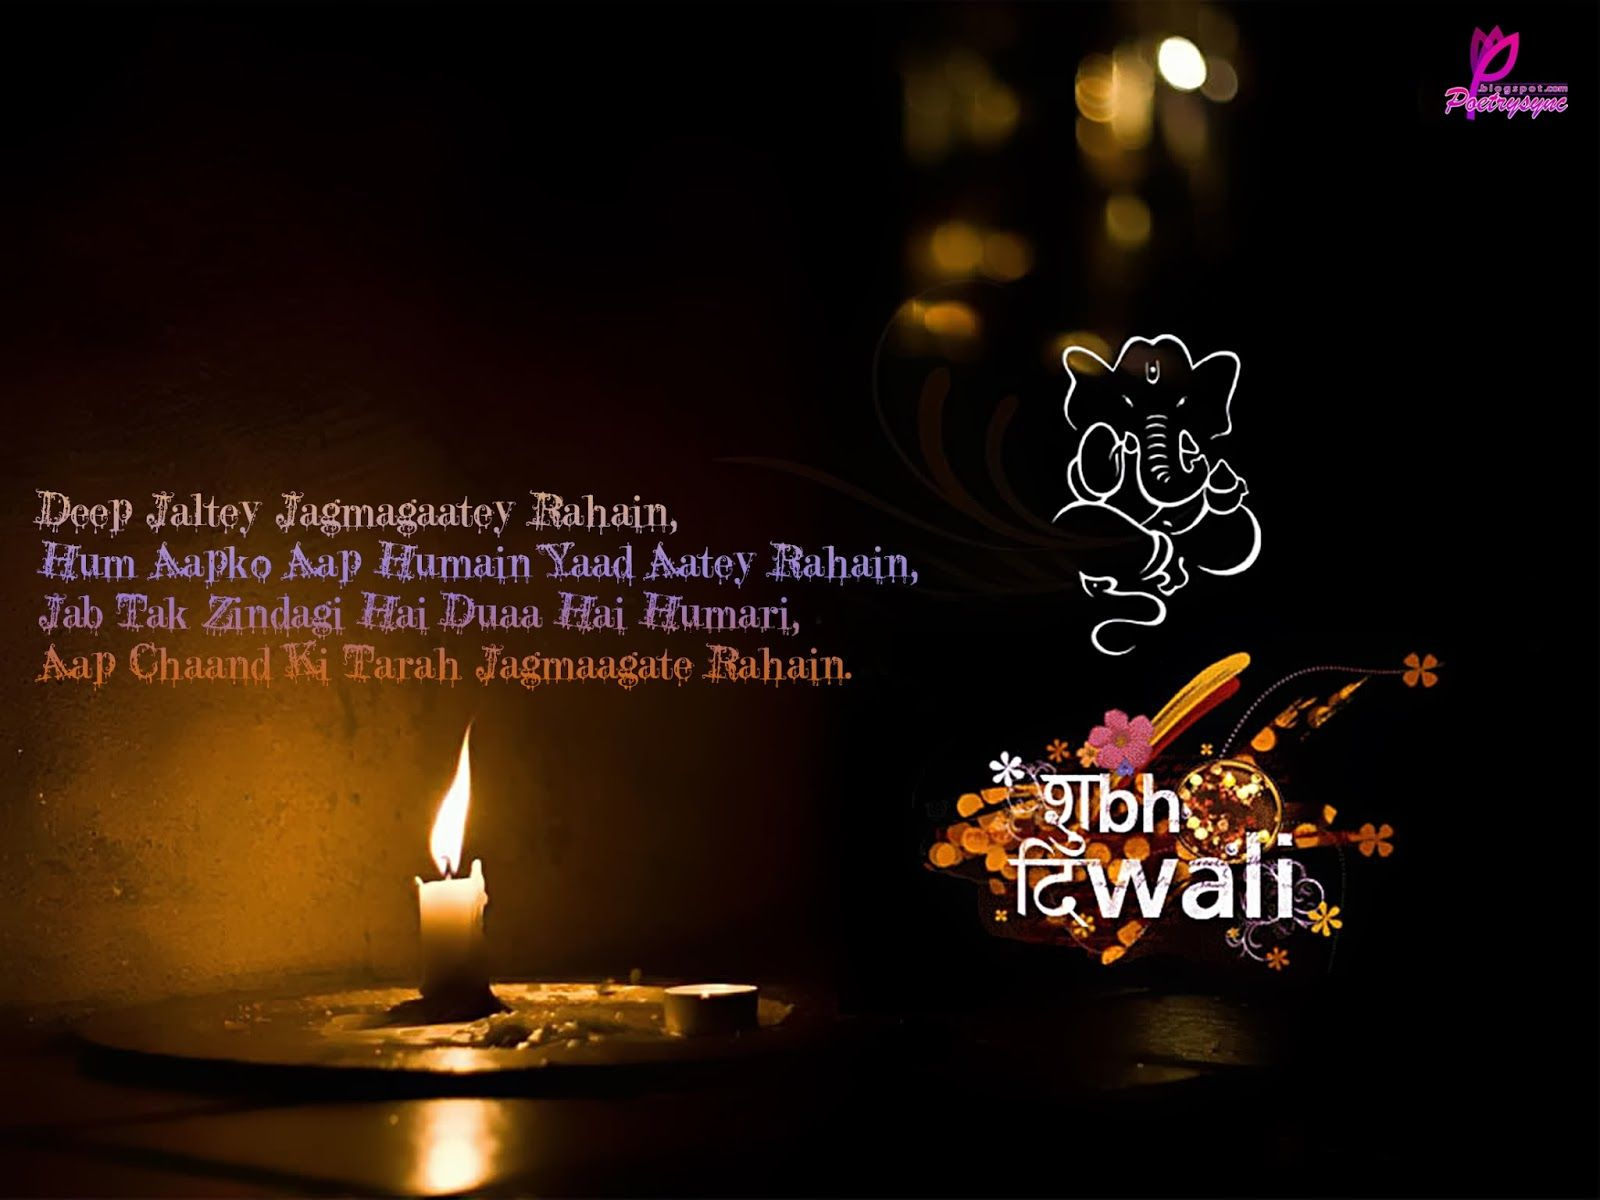 Happy diwali wishes wallpaper and sms pictures special diwali happy diwali wishes wallpaper and sms pictures kristyandbryce Gallery